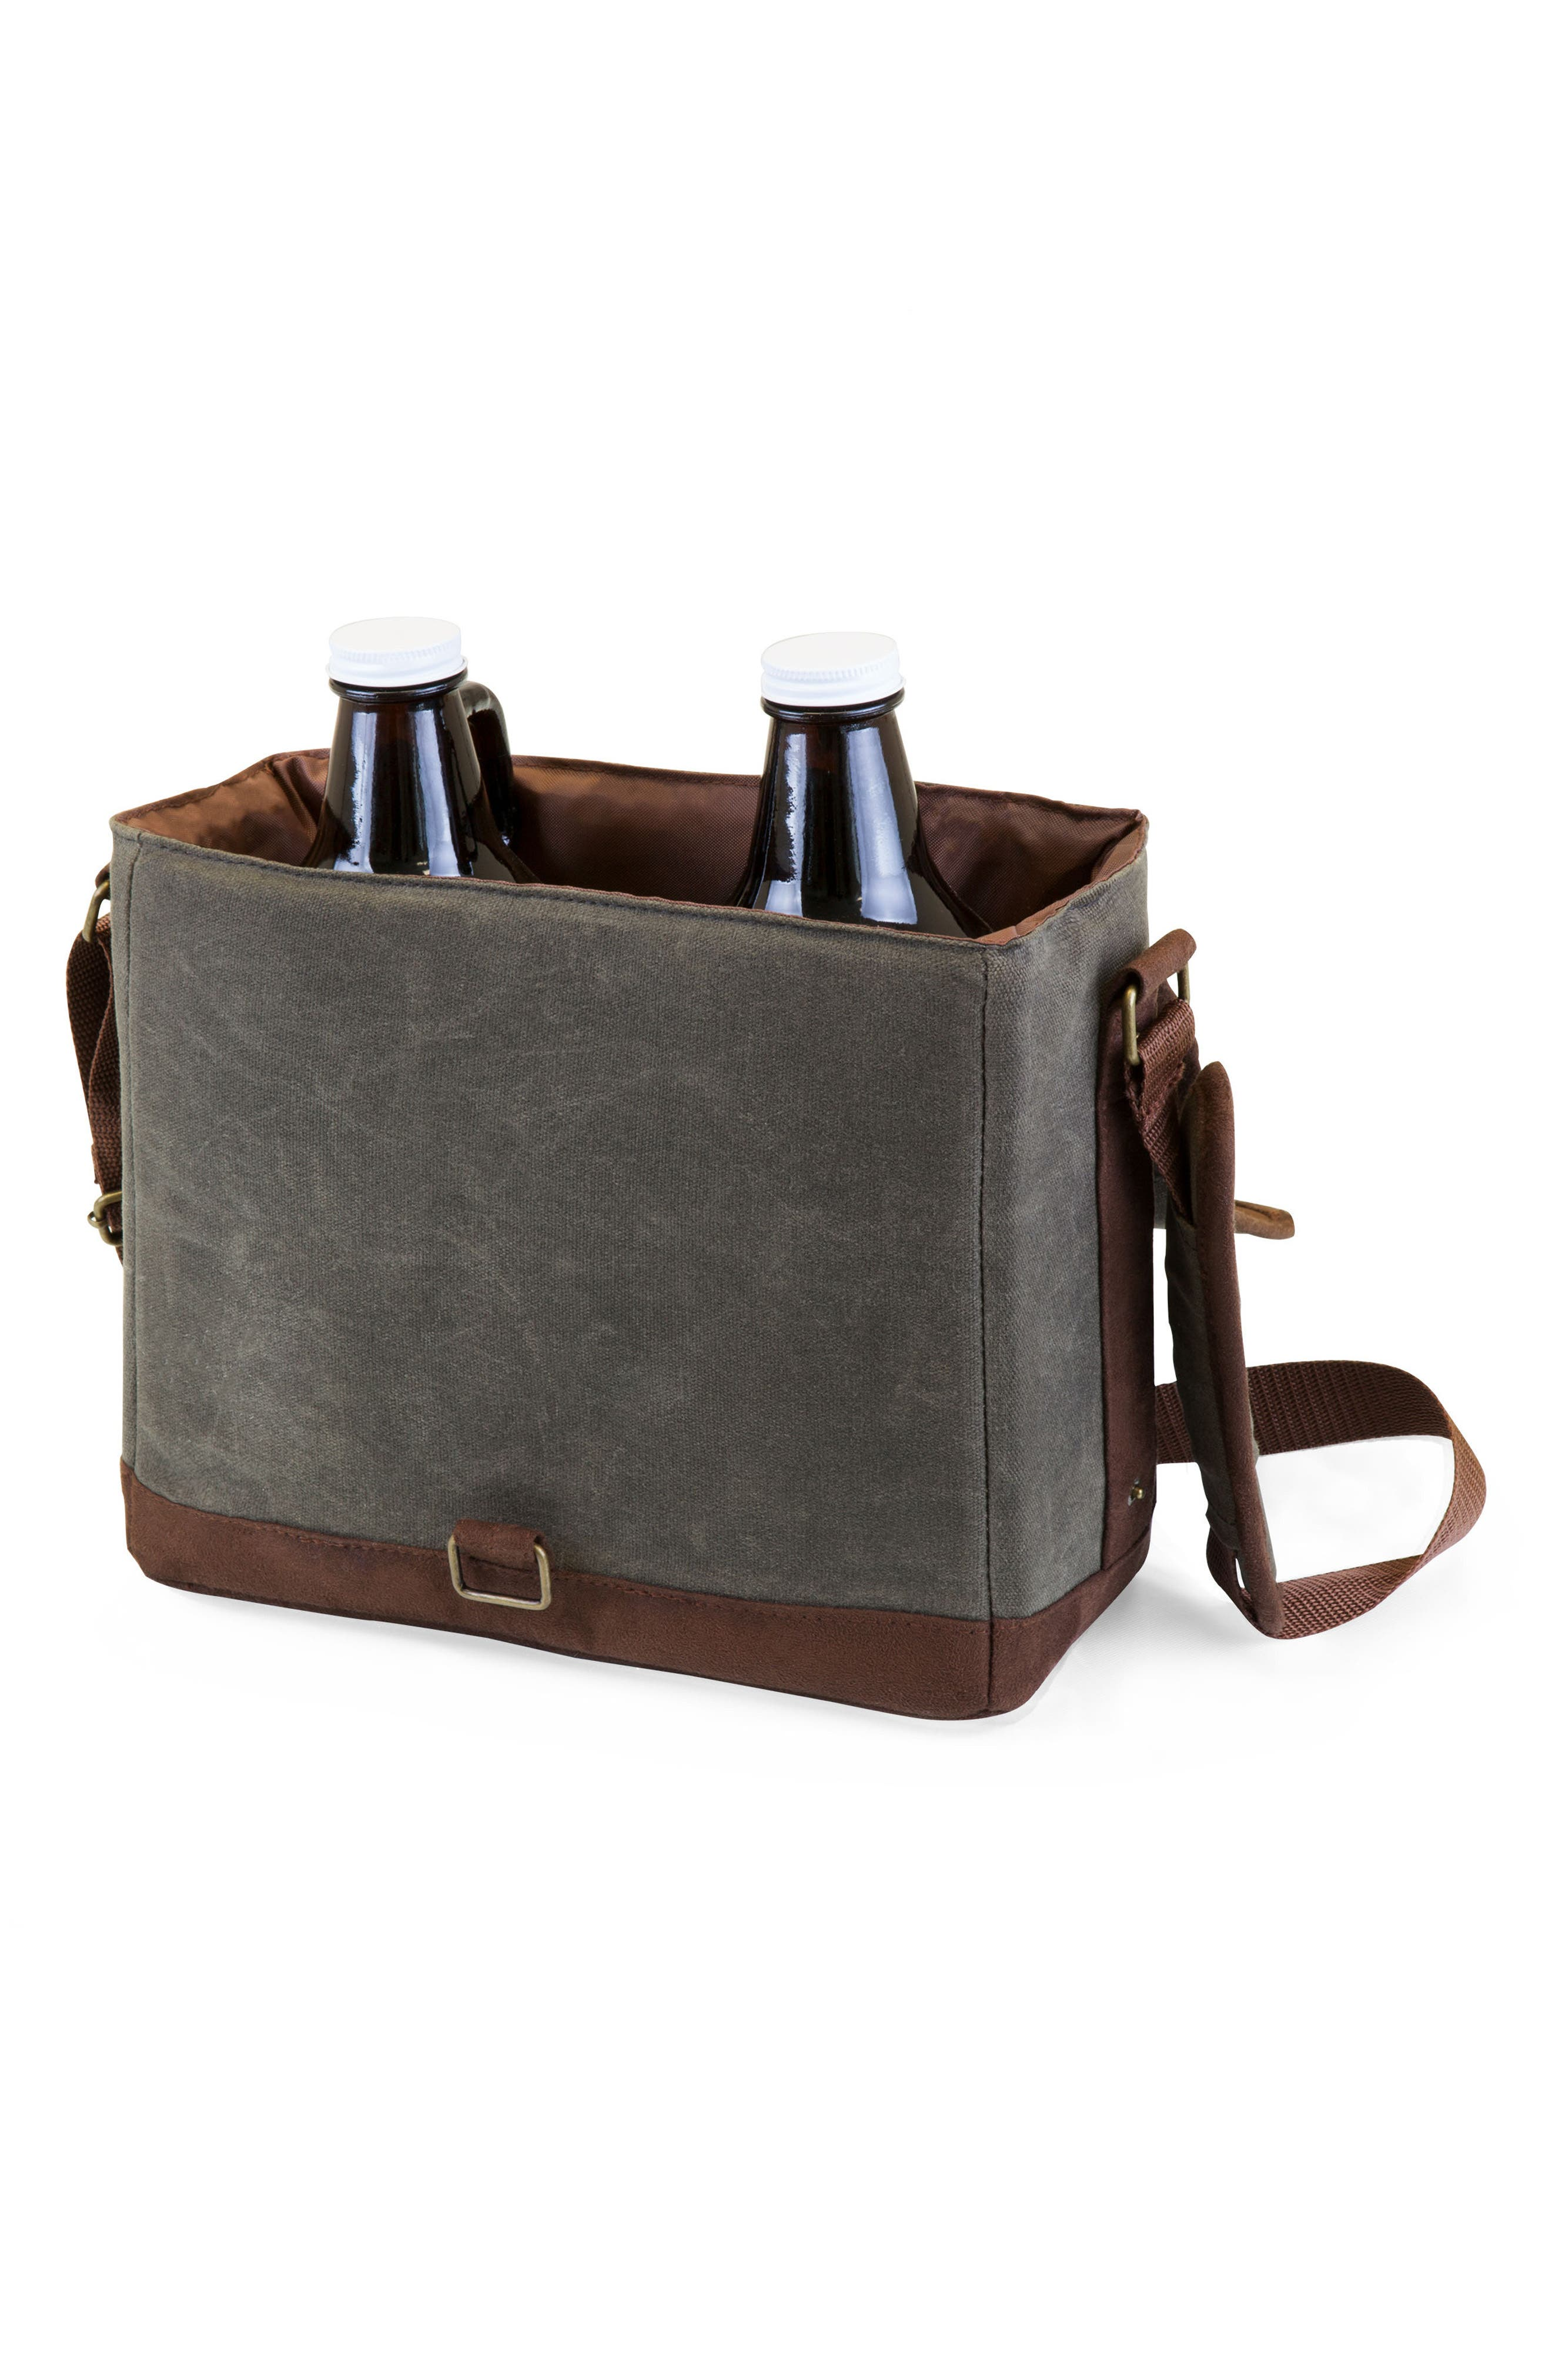 LEGACY,                             Insulated Double Growler Tote & Growlers,                             Alternate thumbnail 2, color,                             301